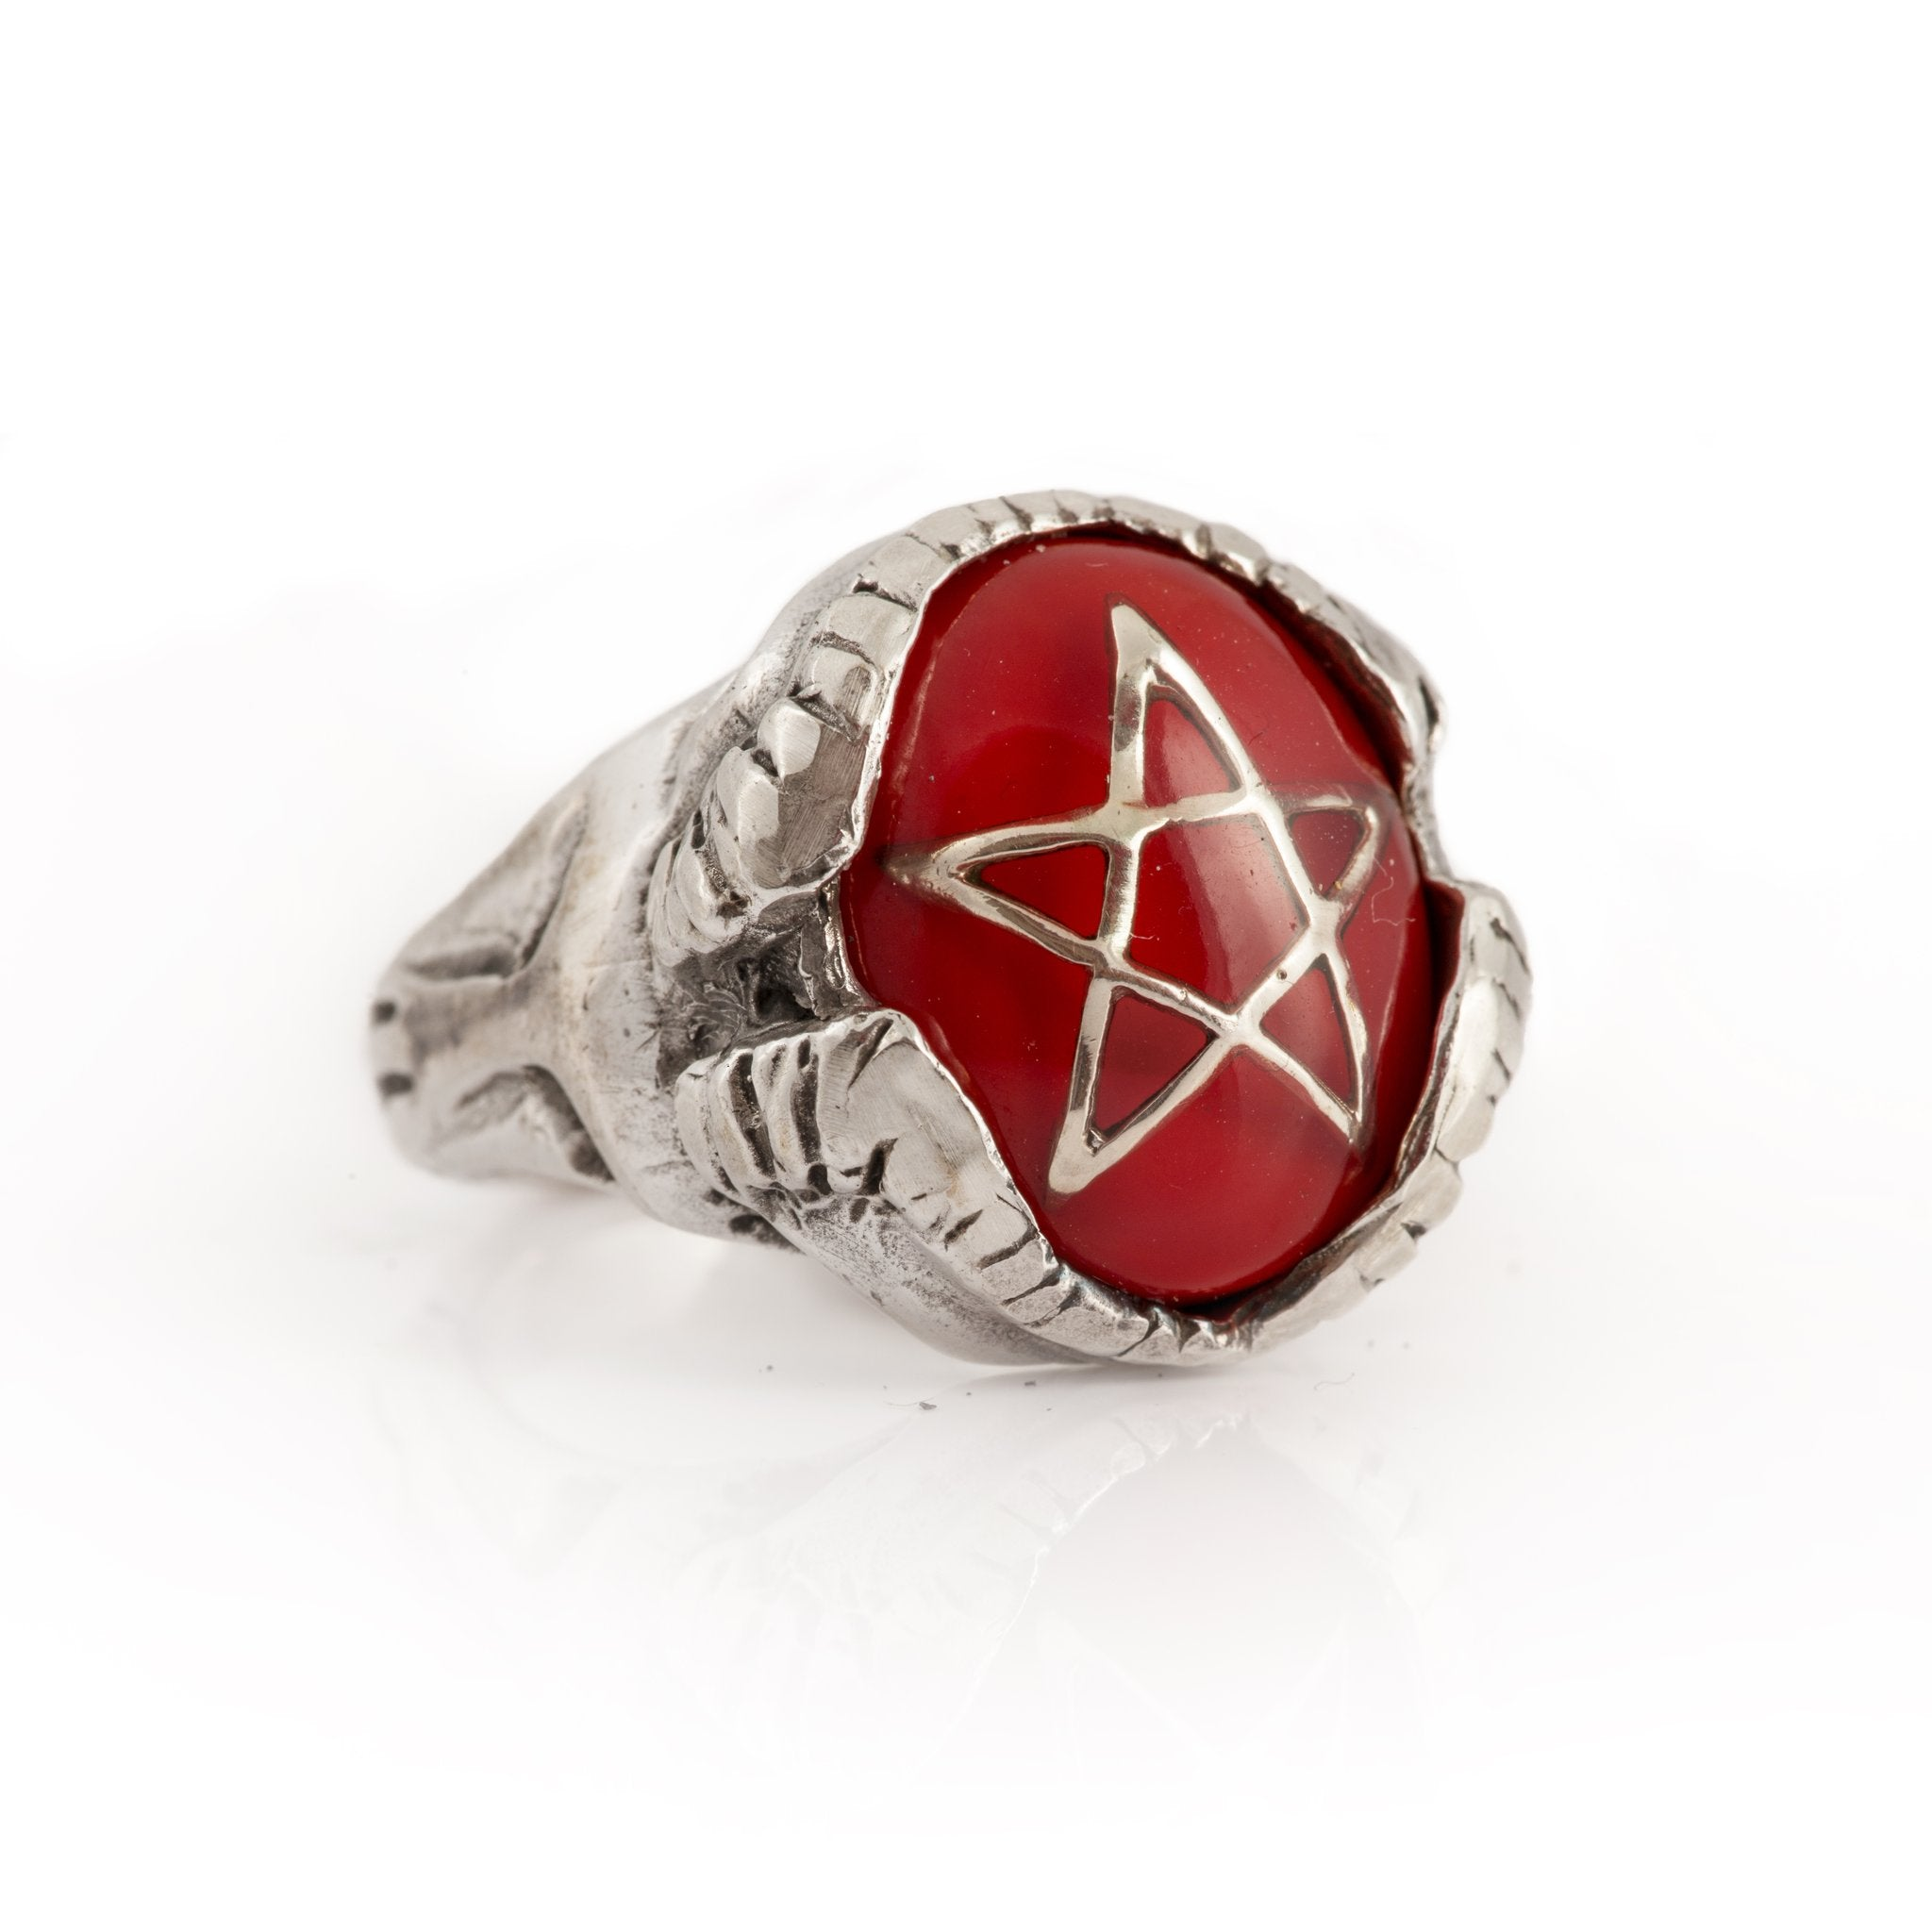 Ewaka Red Devil Heart Ring